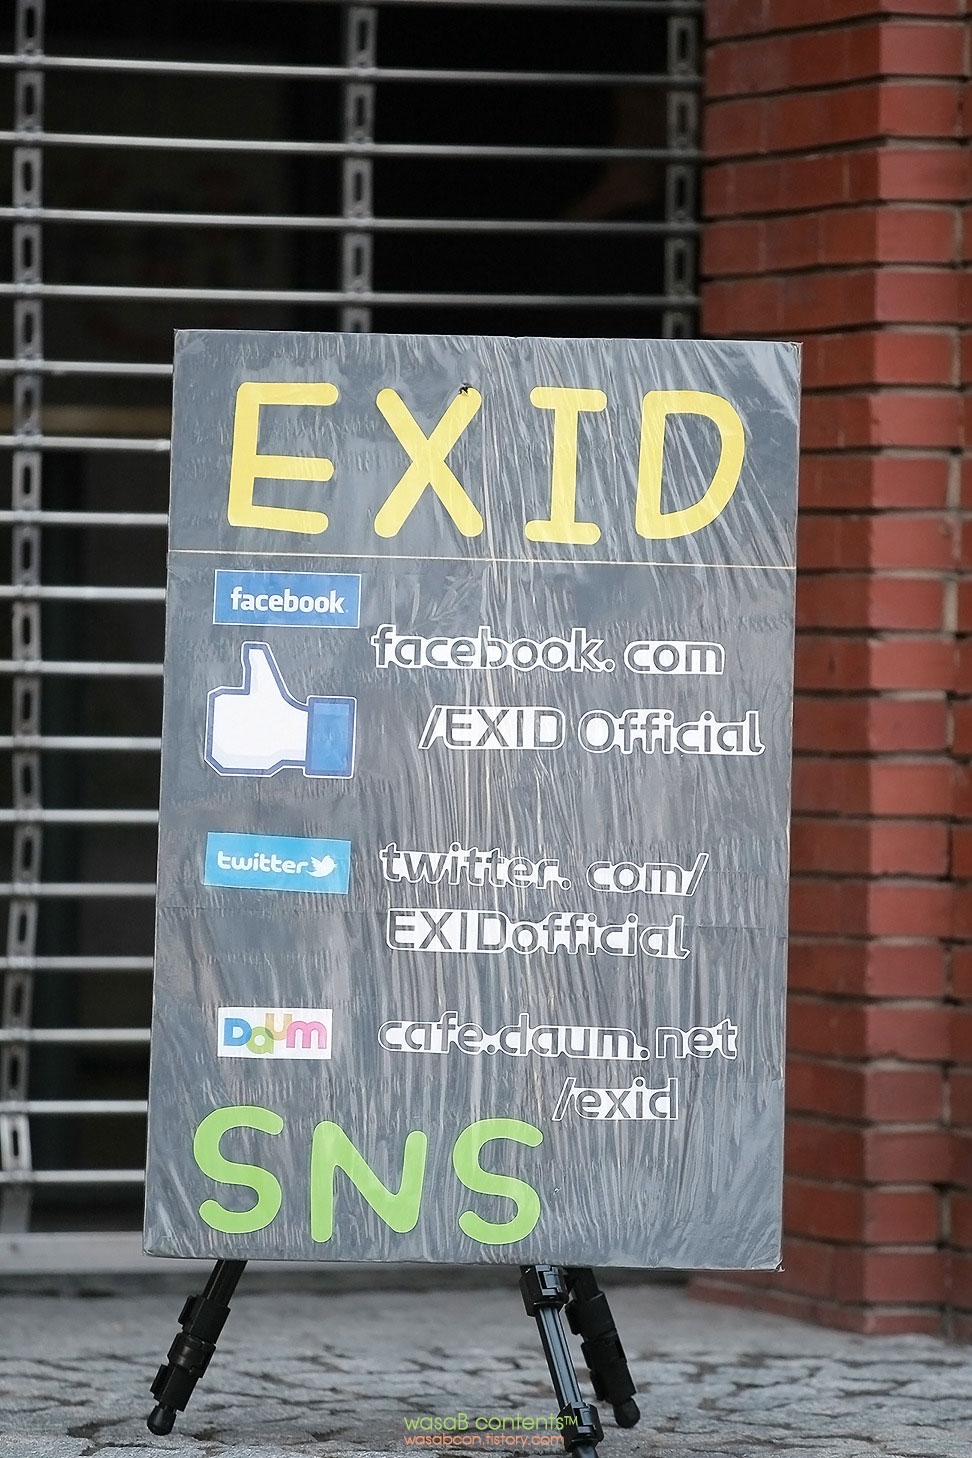 EXID official Facebook Twitter Daum Cafe